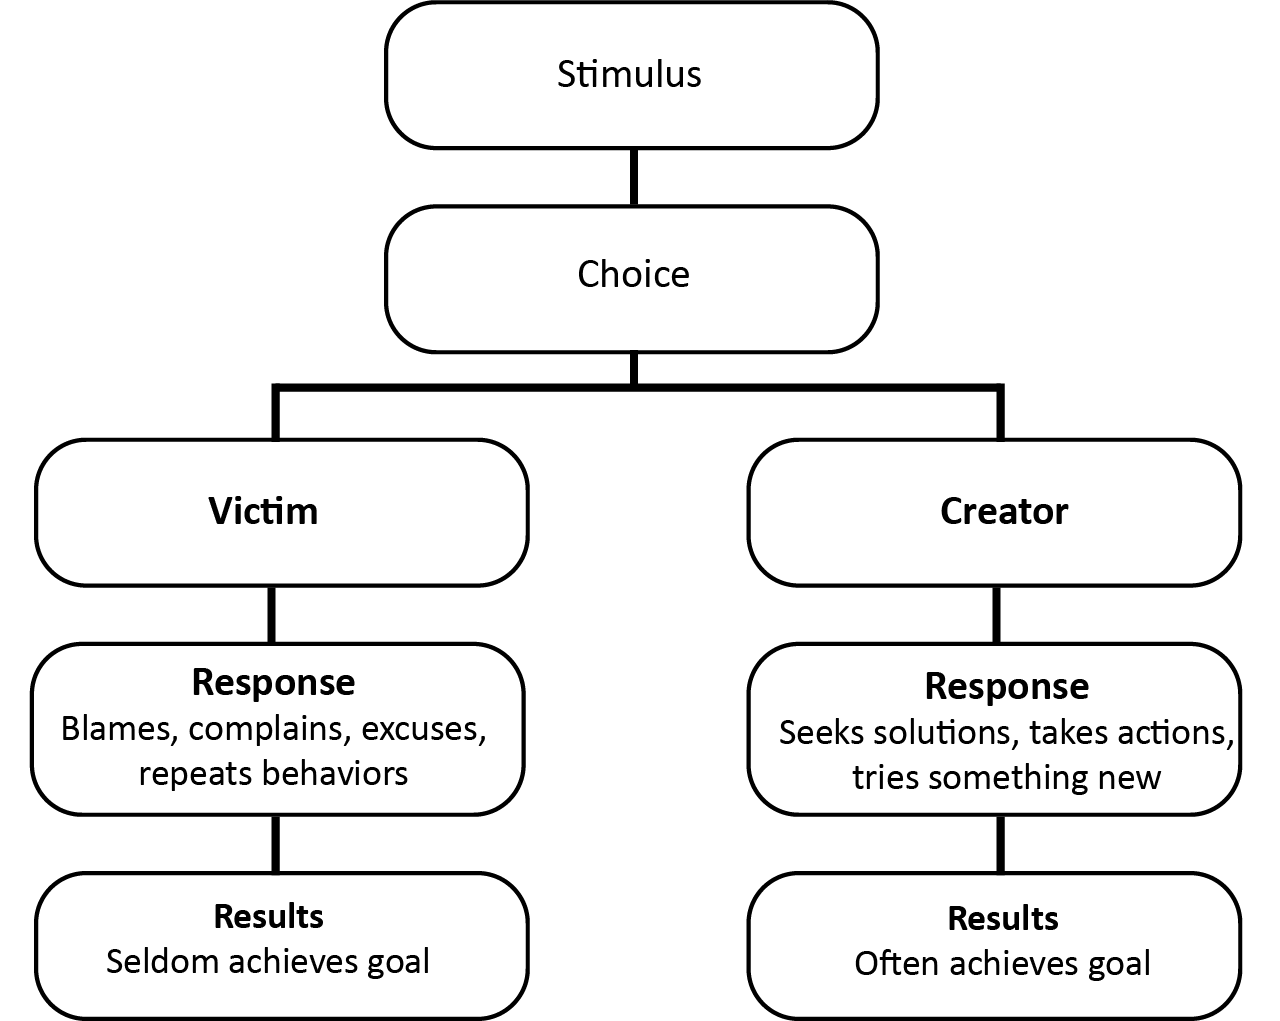 Chart of Differing Responses of Victims and Creators. The victim blames, complains, and seldom achieves goal while creators seek solutions, take action, tries new things and achieves their goal.